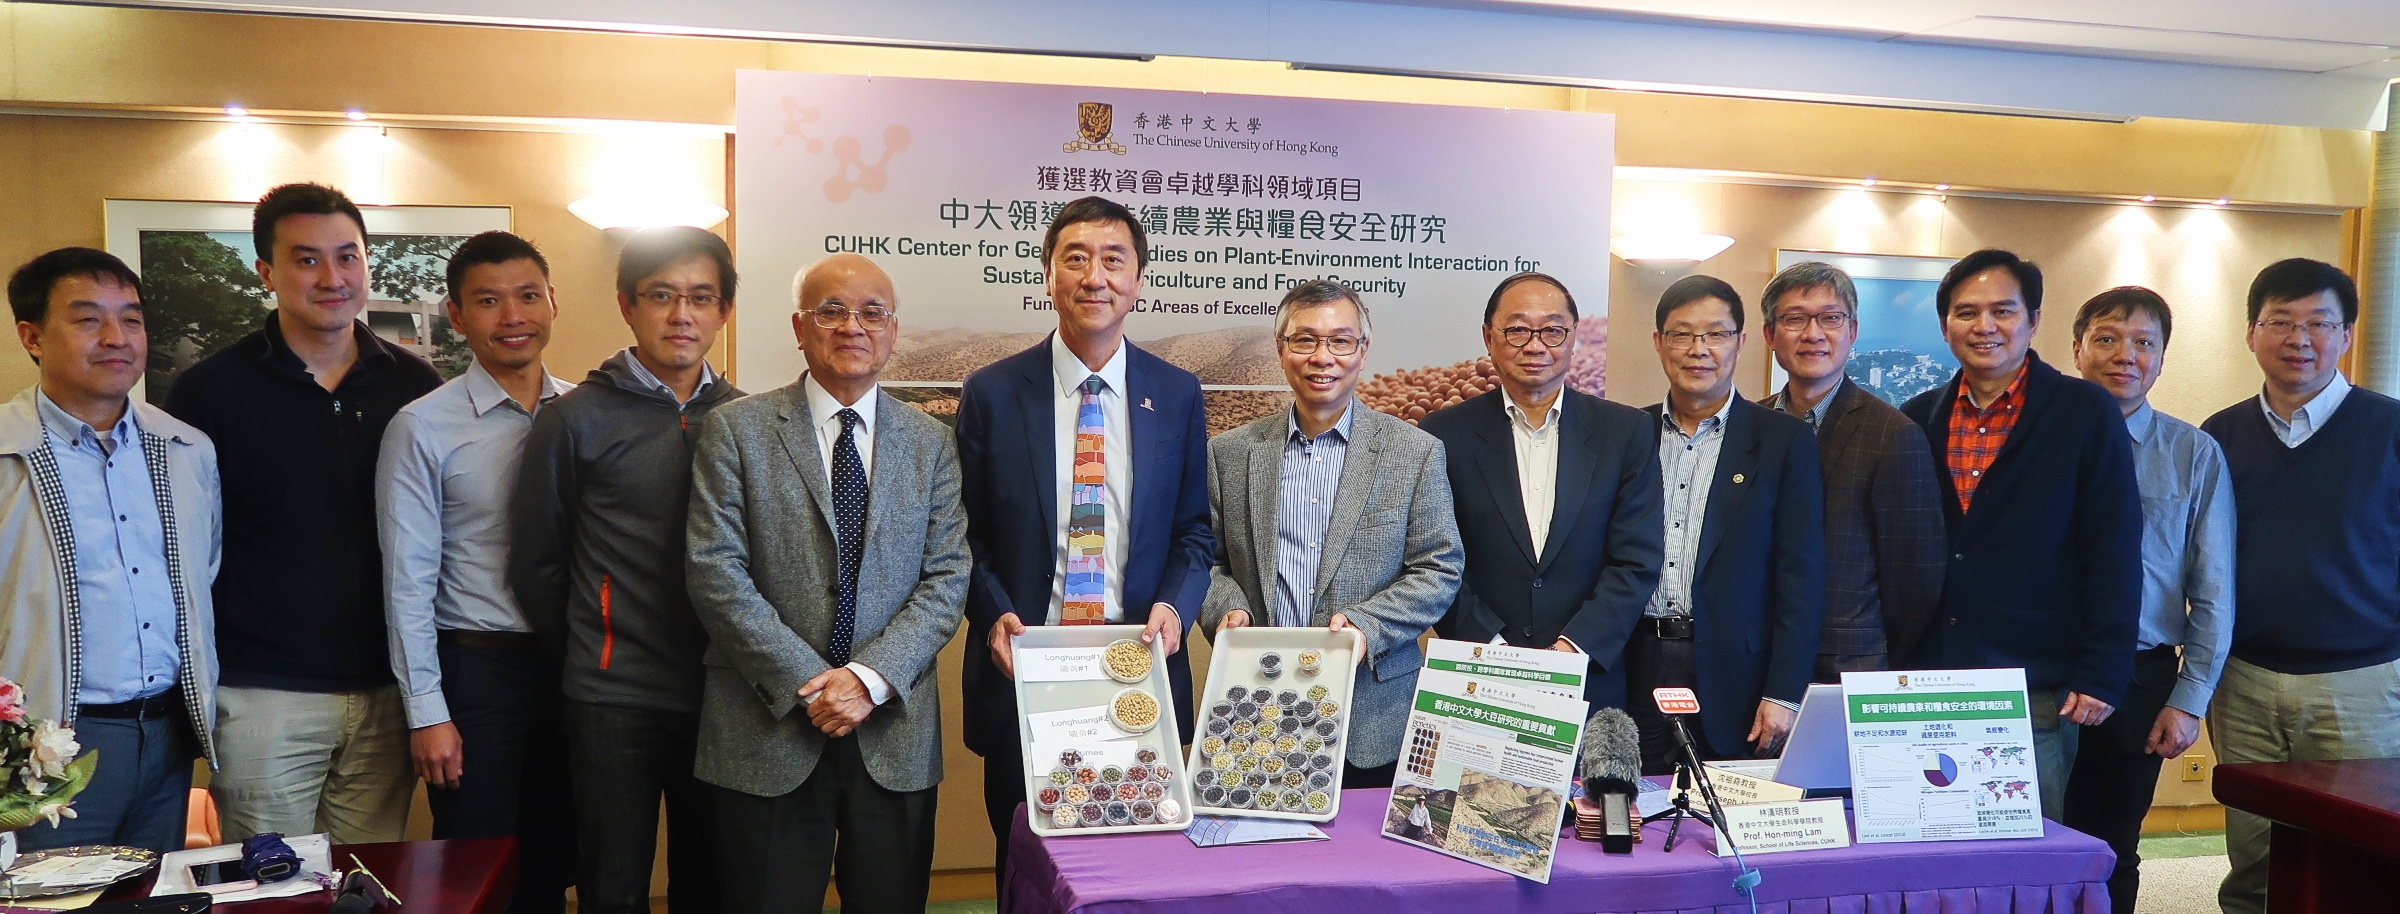 Prof. Joseph J.Y. Sung and Prof Hon-ming Lam with the research team of AoE Centre for Genomic Studies on Plant-Environment Interaction for Sustainable Agriculture and Food Security